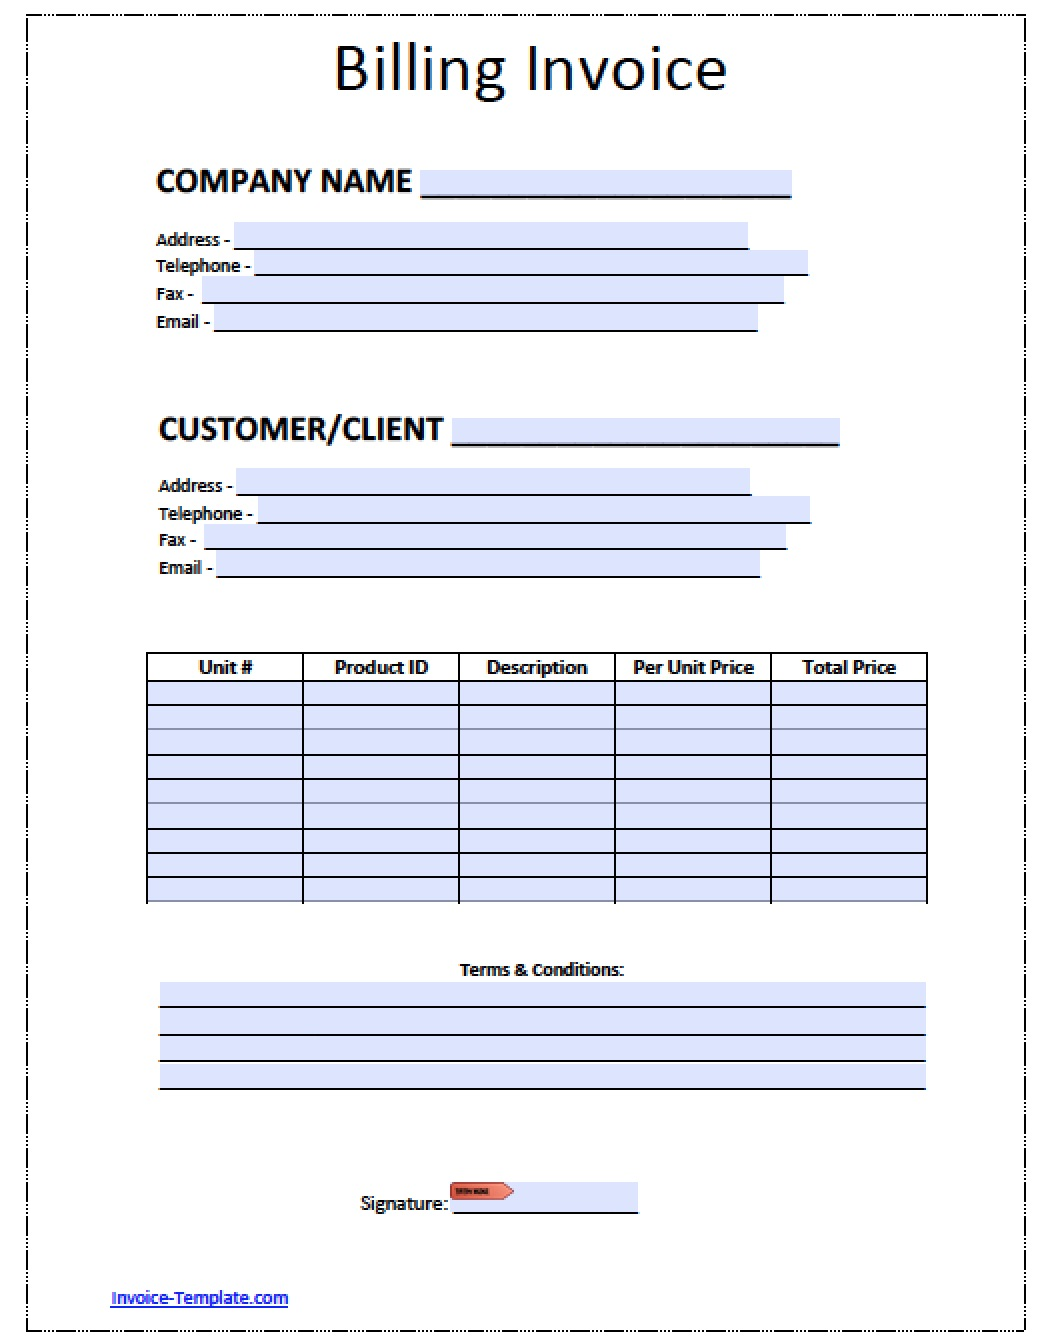 Billing Invoice Template Word Pdf  Invoice Sample In Word